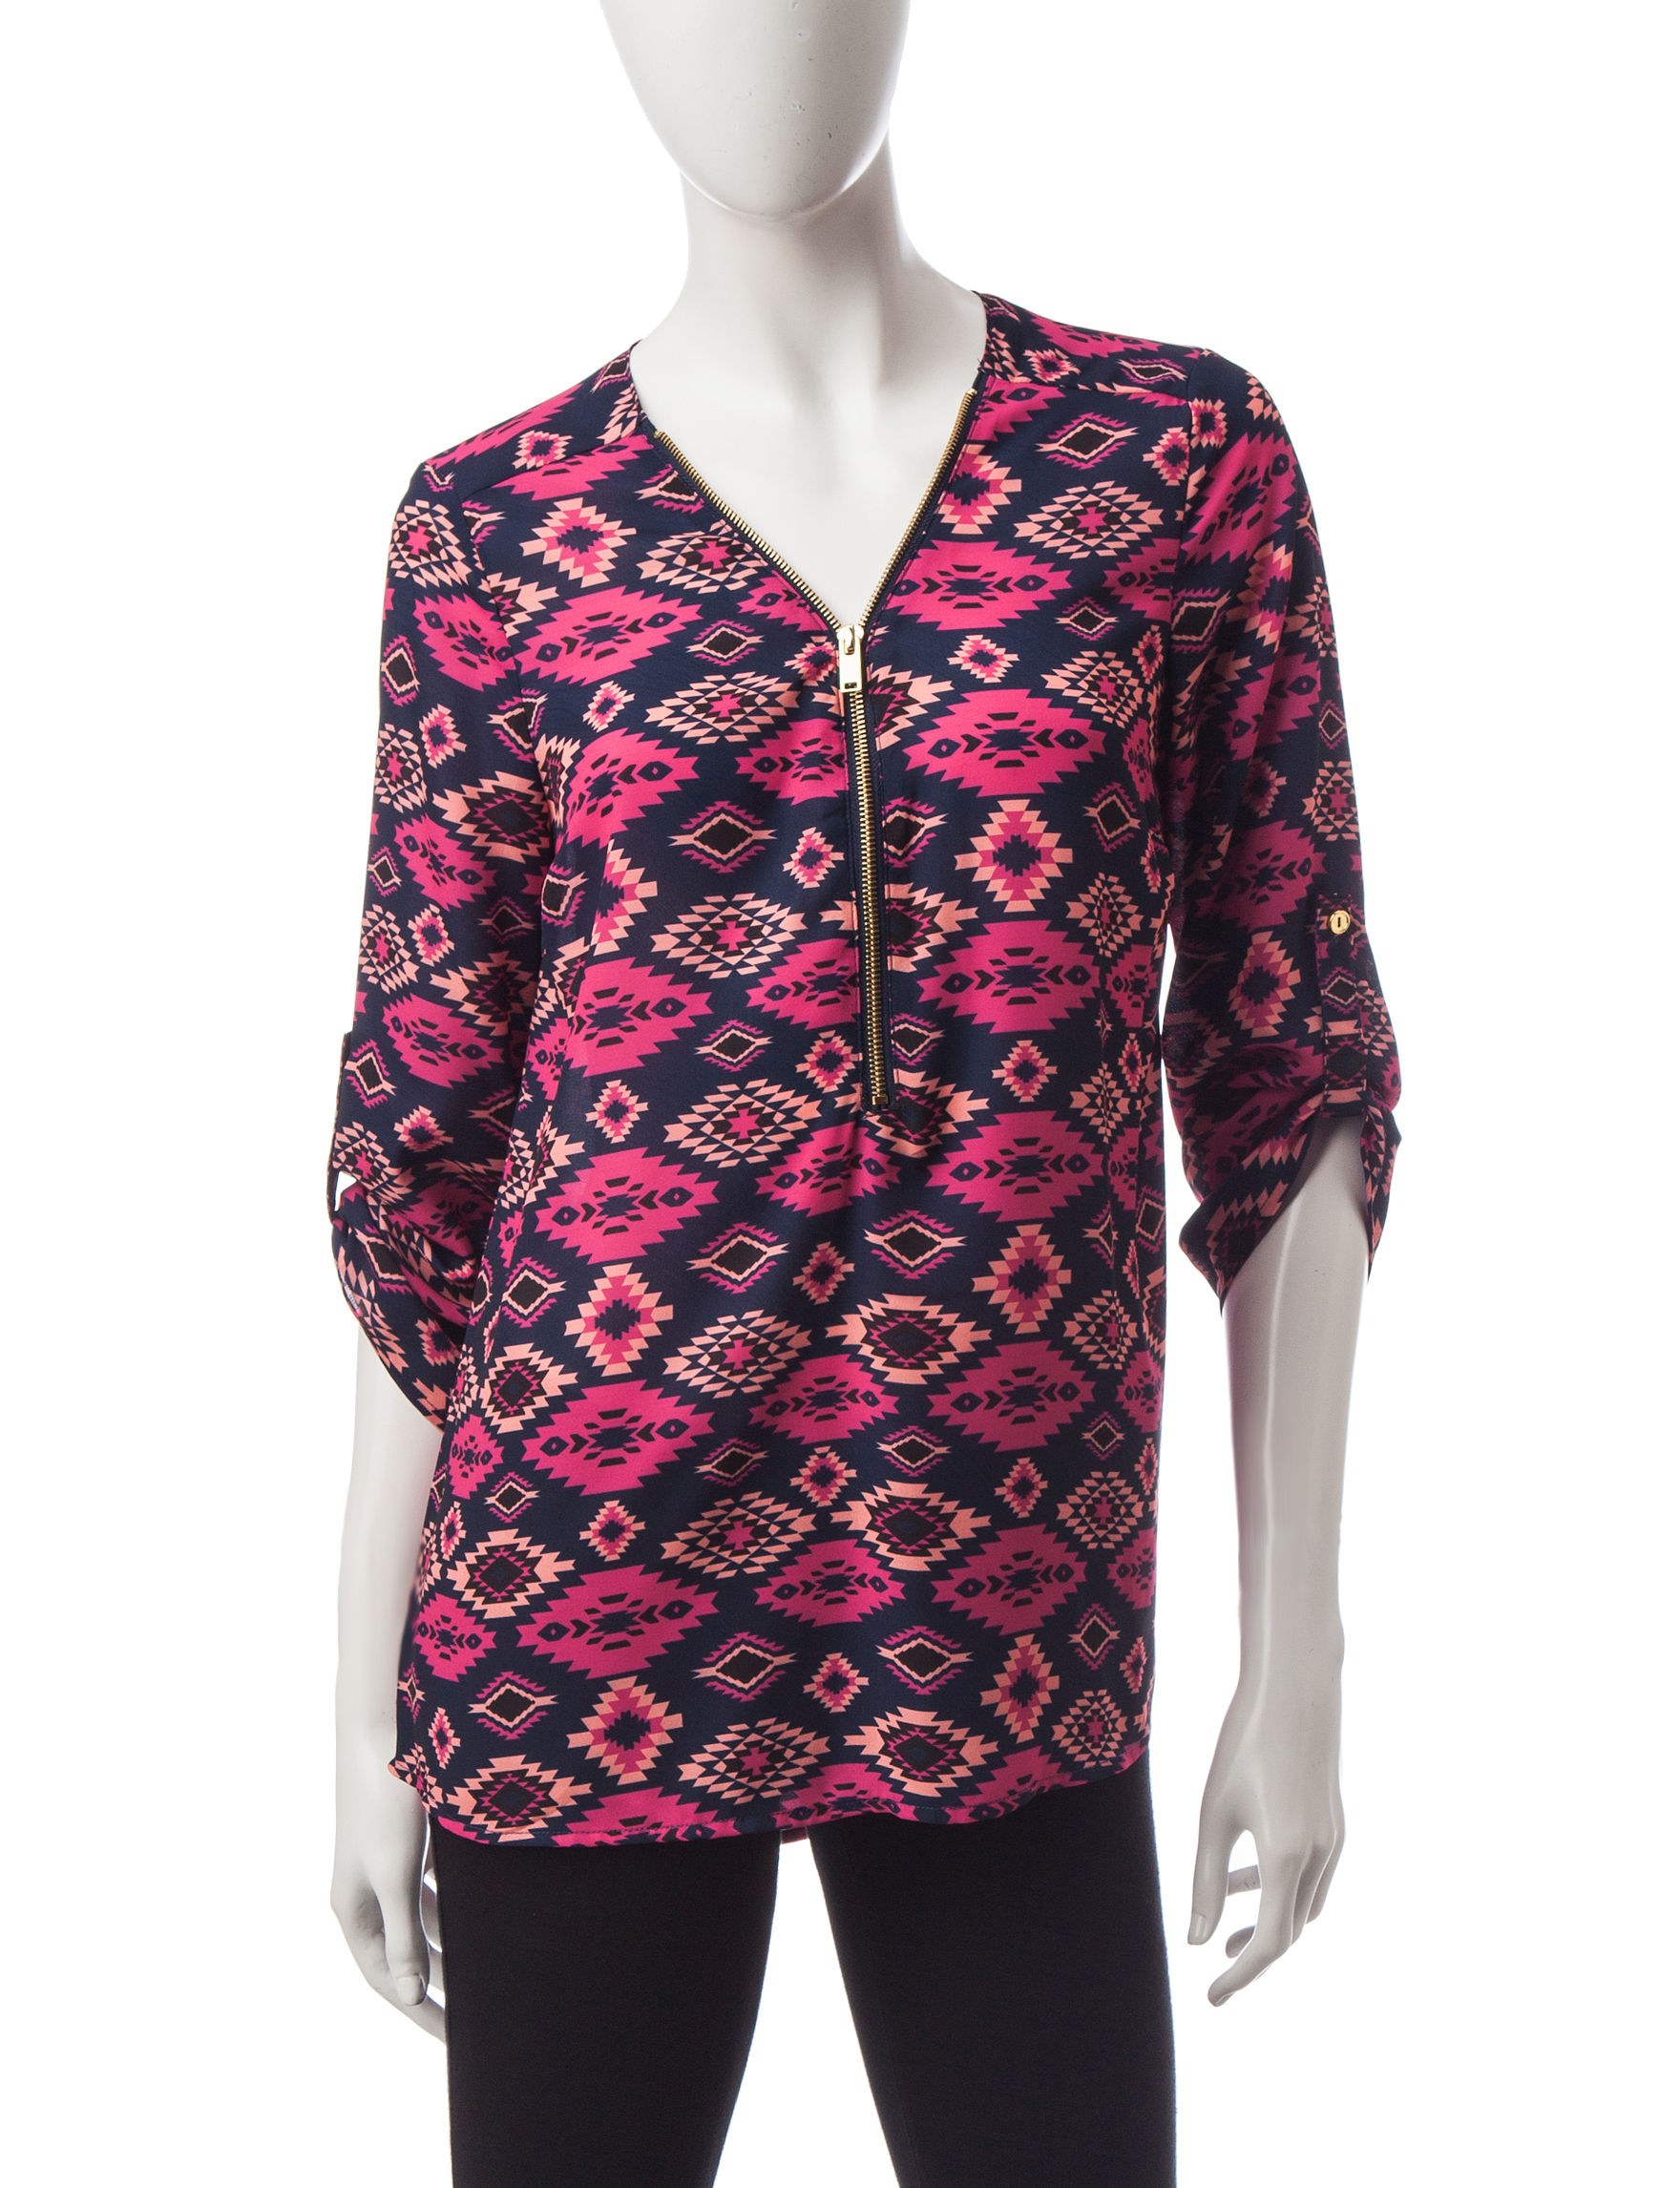 Wishful Park Red Multi Pull-overs Shirts & Blouses